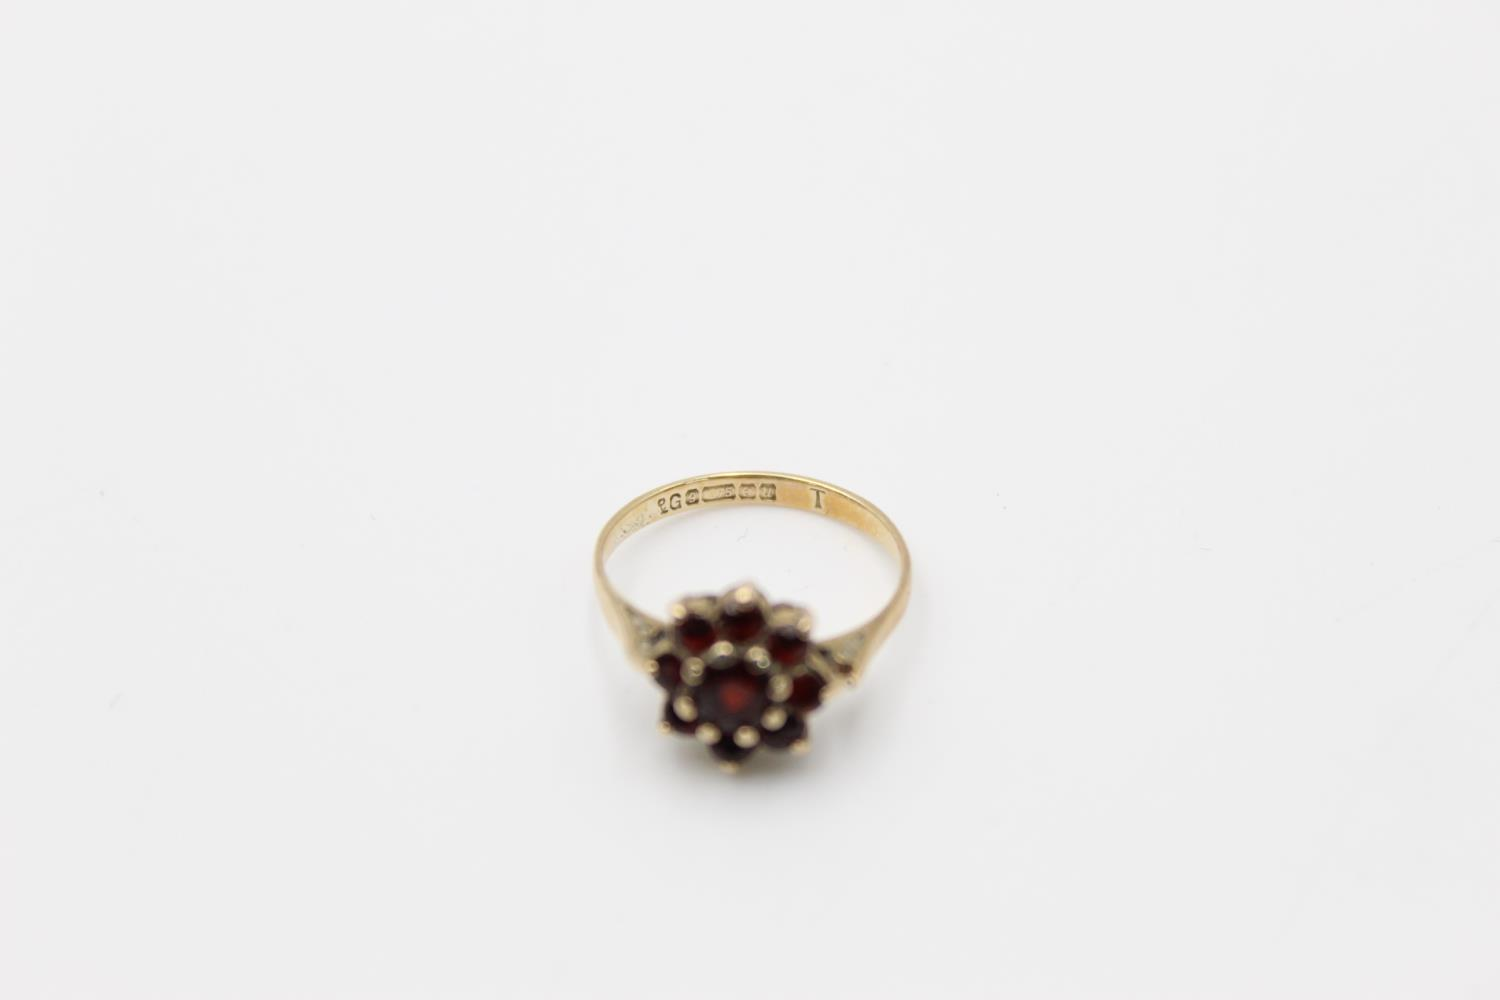 2 x 9ct gold garnet rings inc 7 stone, cluster 4.1g Size O & H - Image 5 of 10